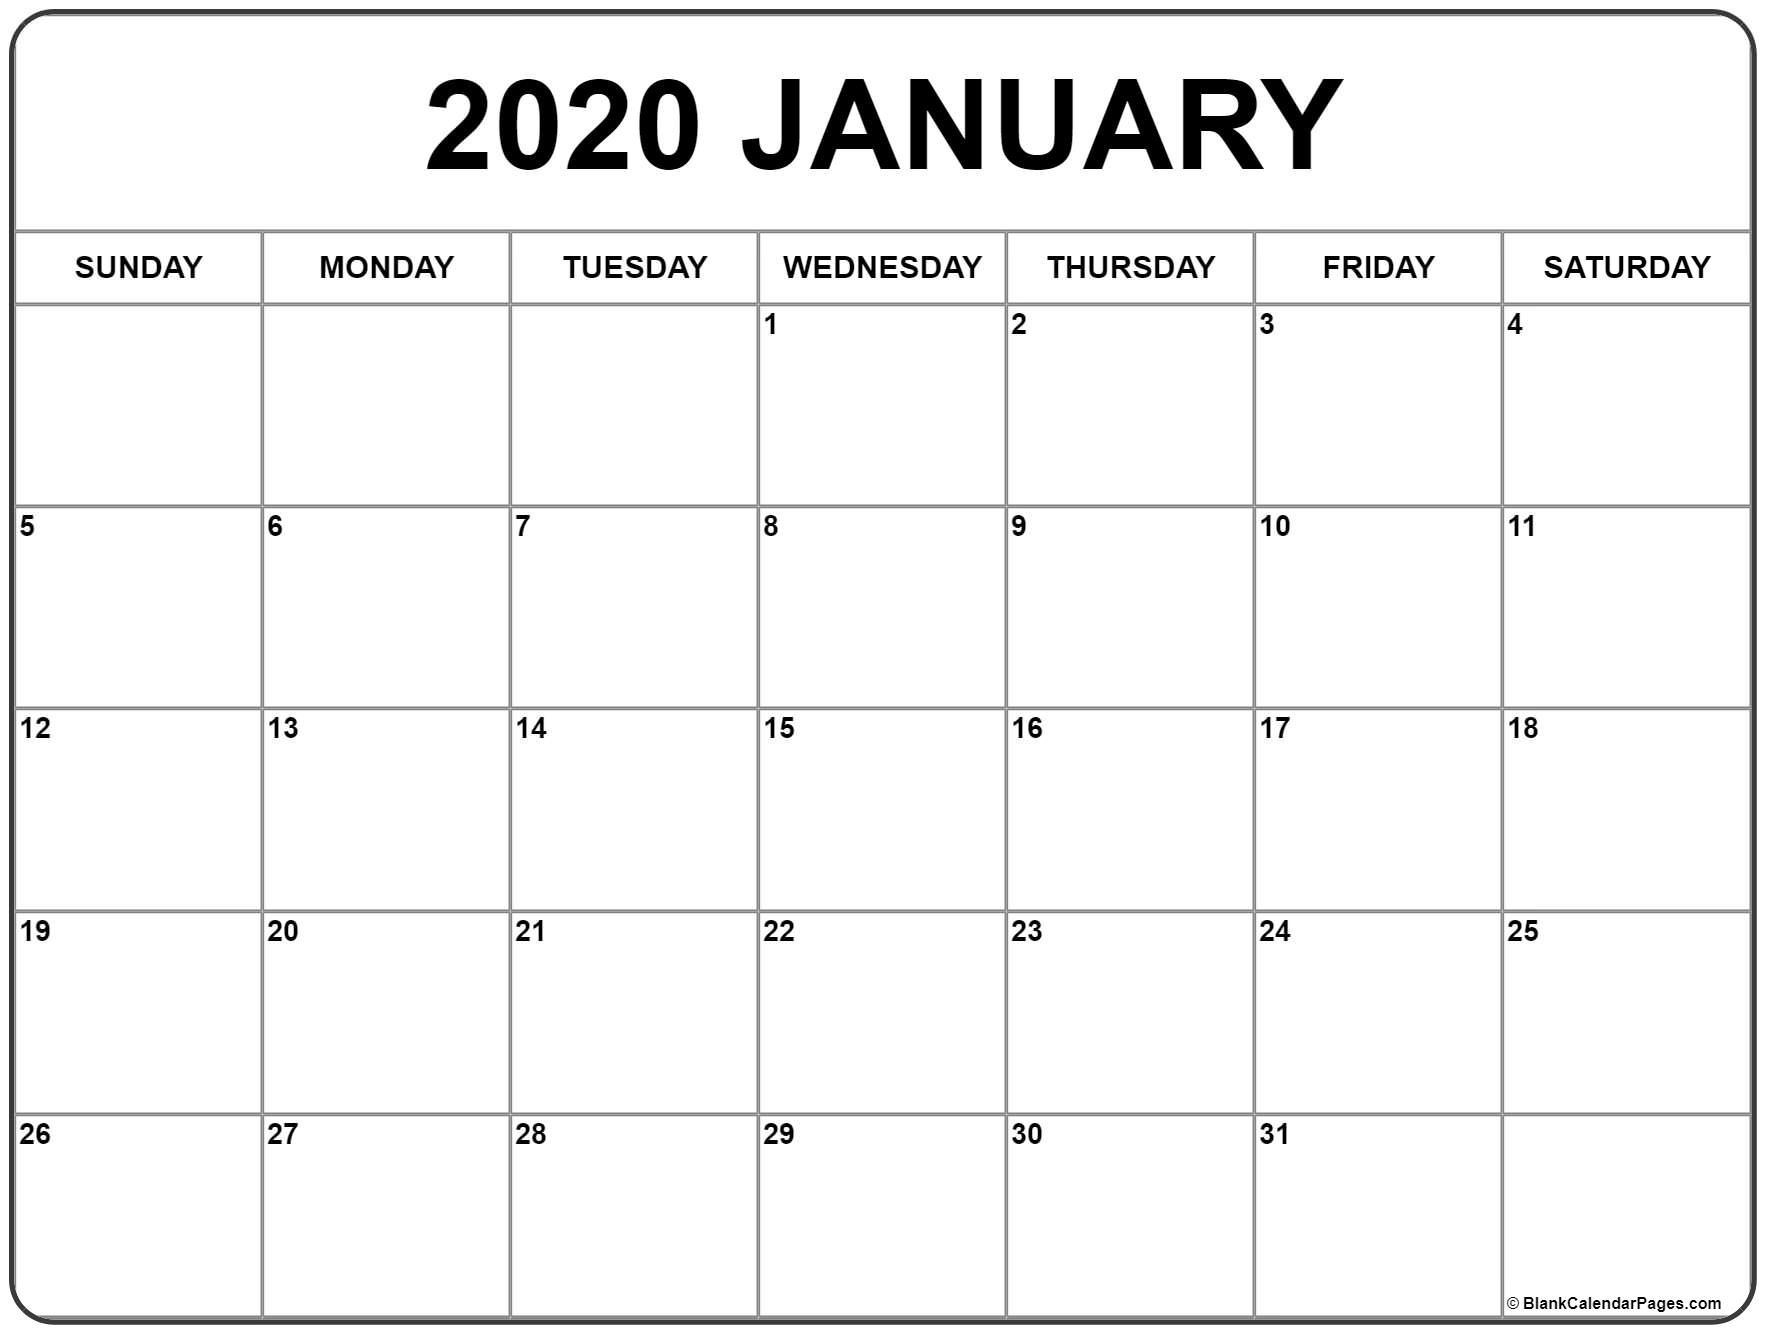 January 2020 Calendar | Free Printable Monthly Calendars  2020 Calendar Free Printable